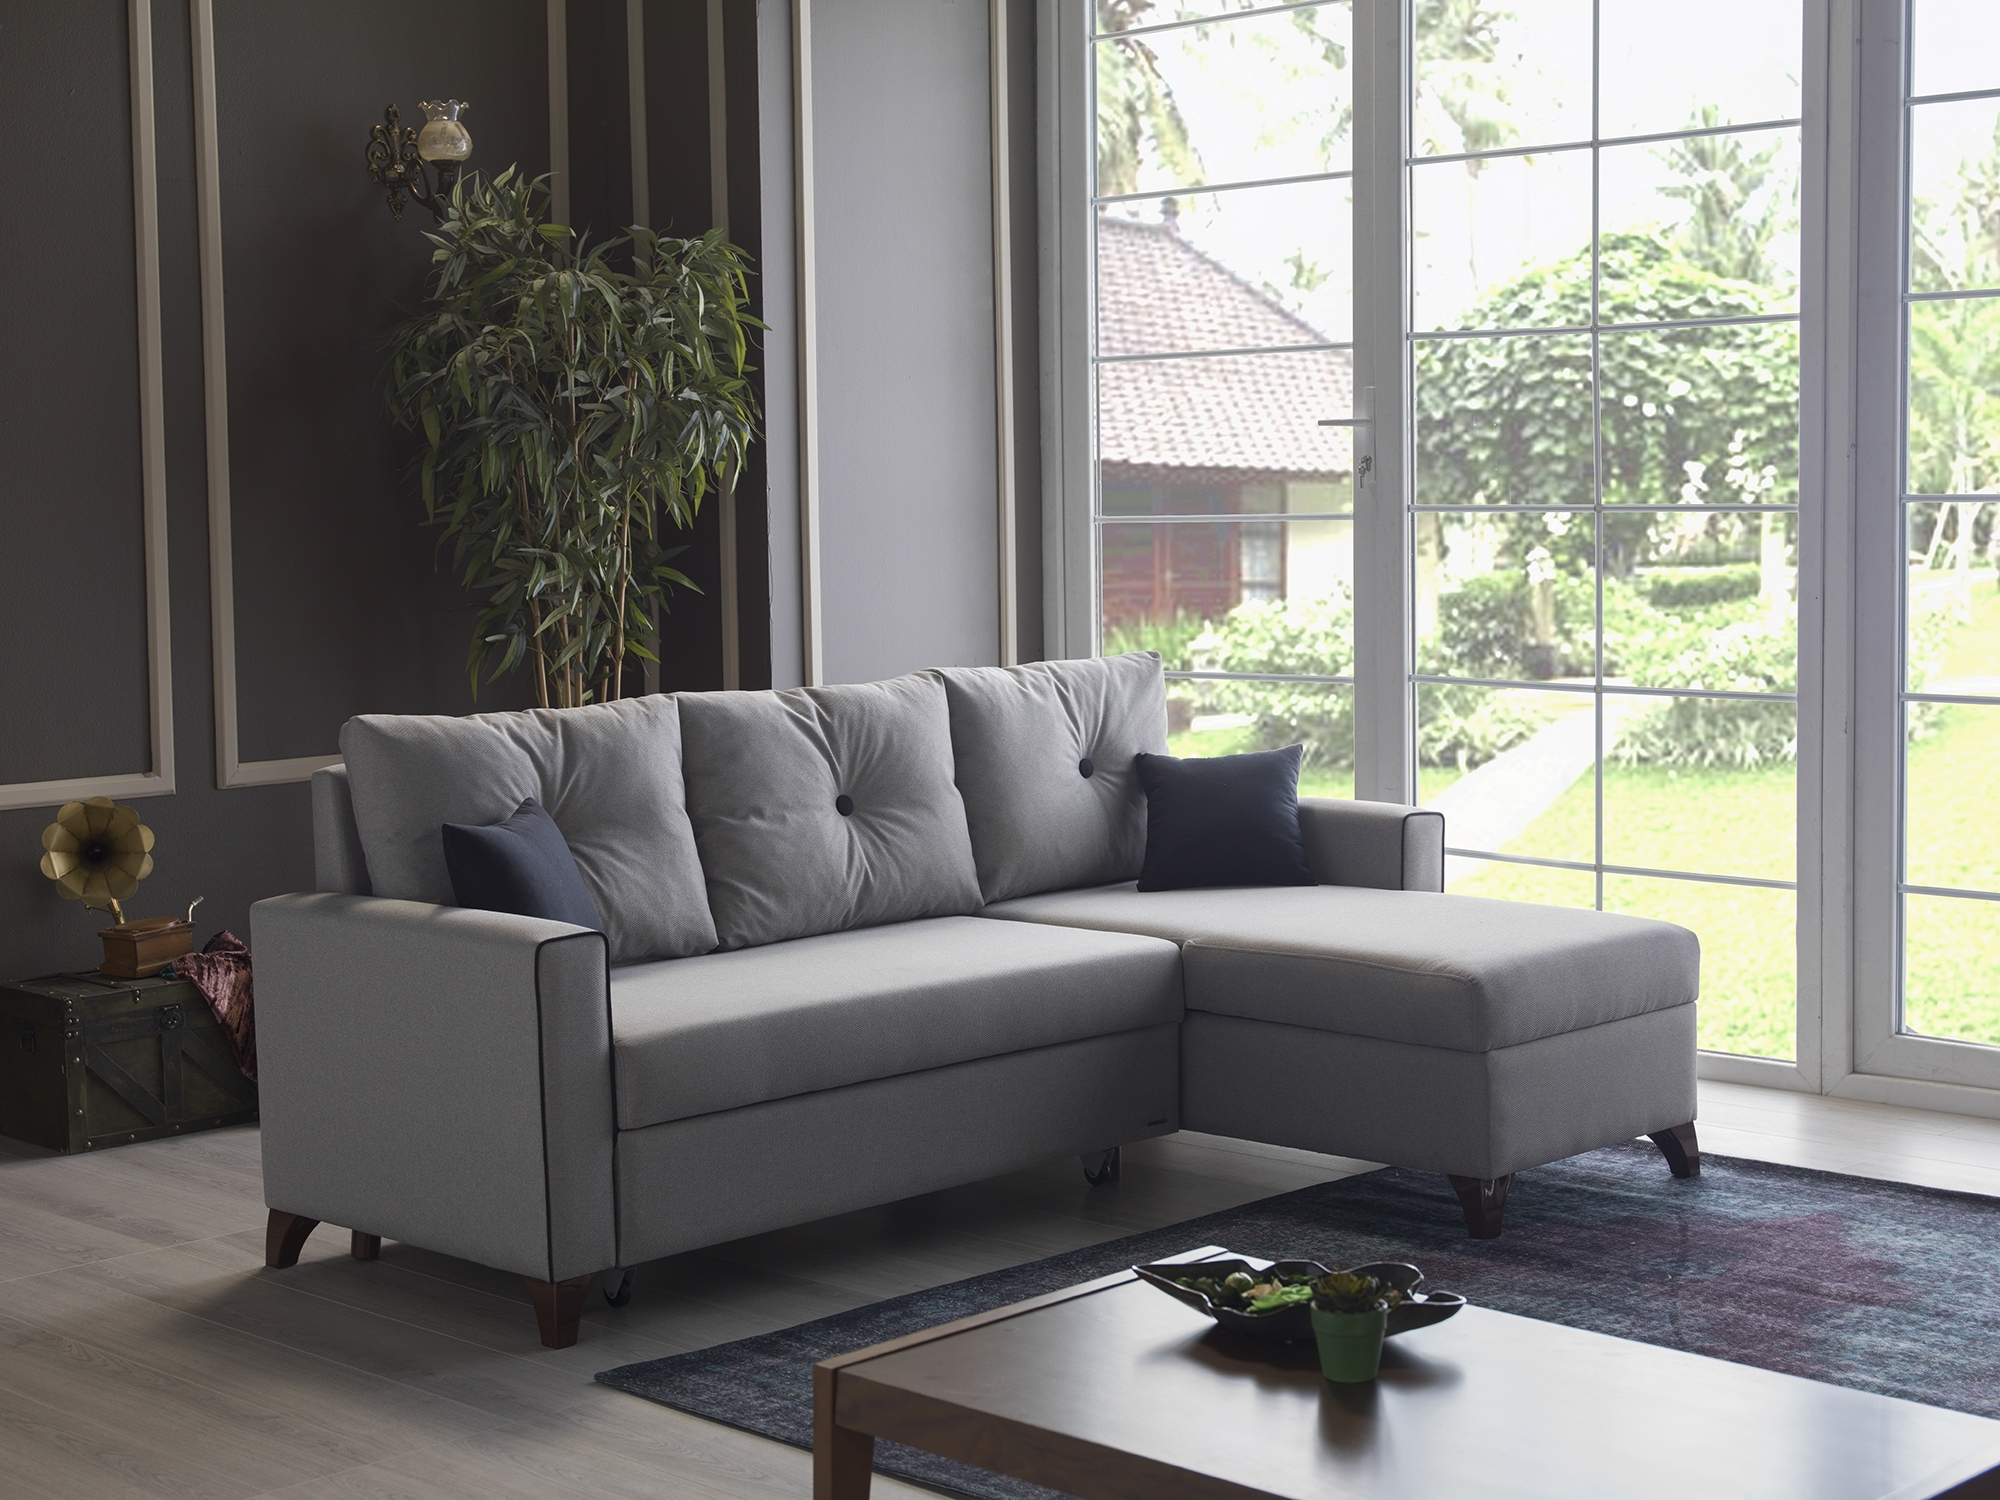 Sealy Sectional Sofa Bed | Baci Living Room In Lucy Dark Grey 2 Piece Sectionals With Raf Chaise (View 25 of 25)